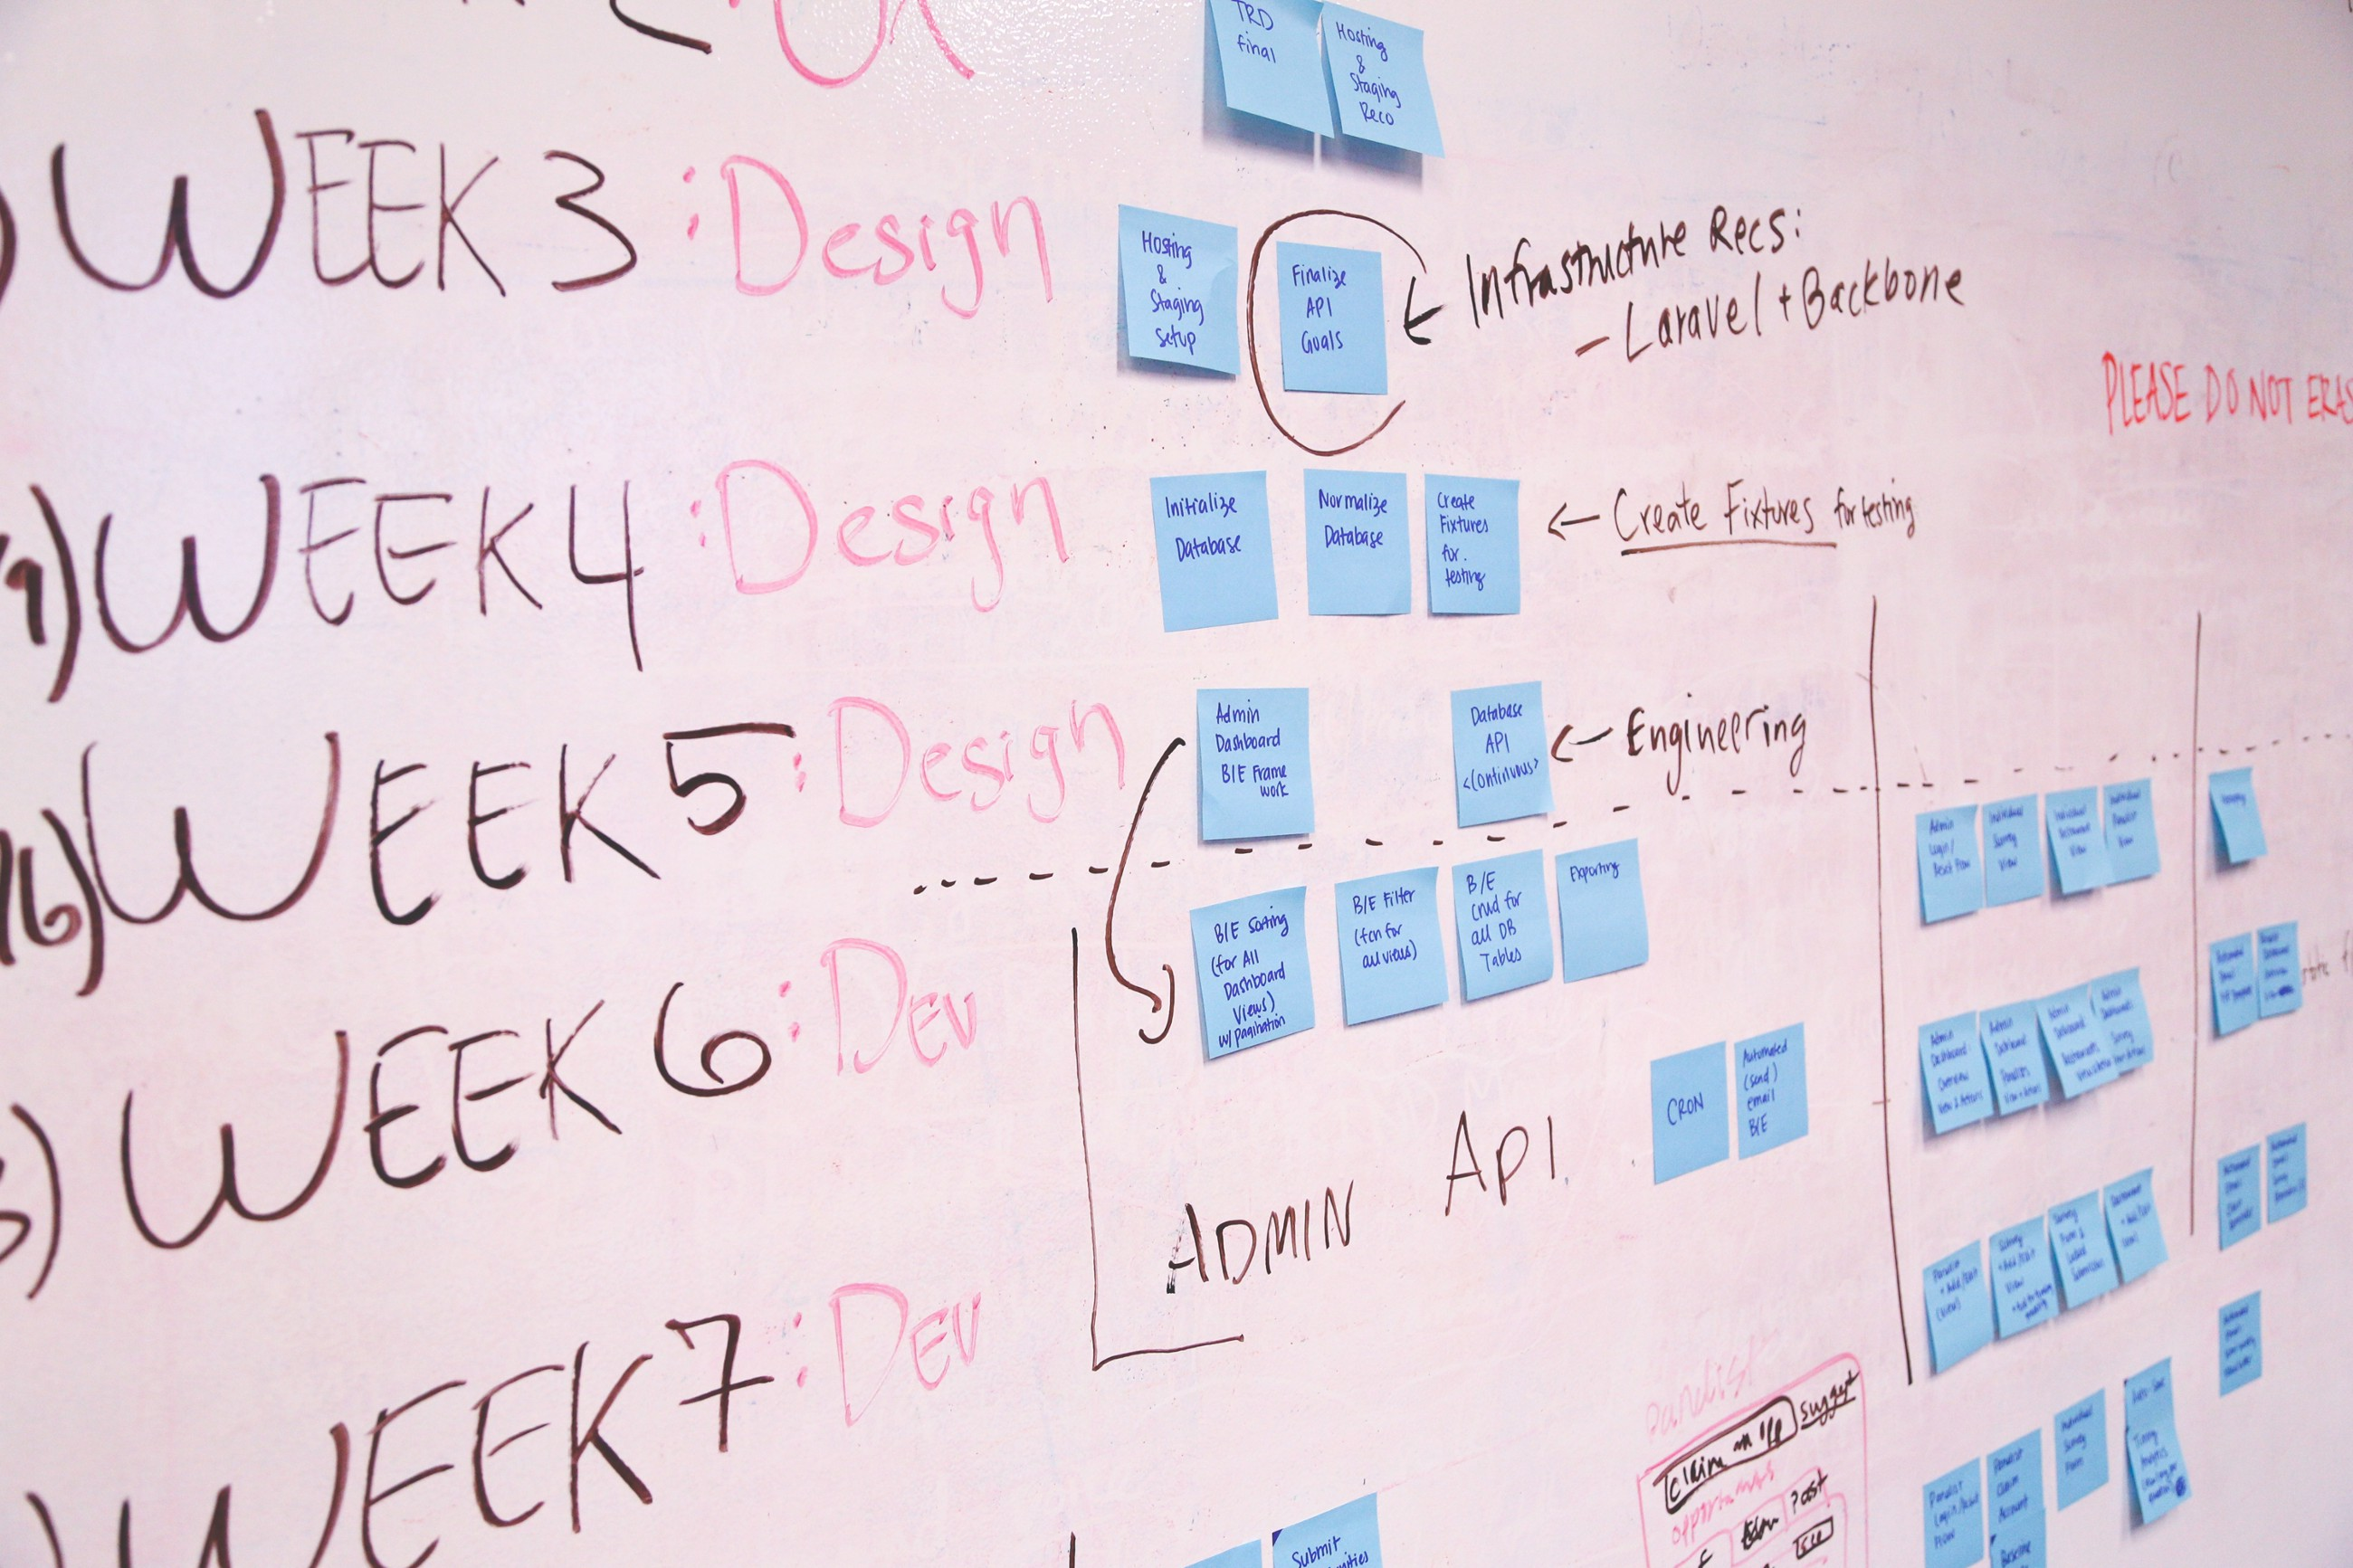 28 Ideas for Becoming 5 Times More Productive Every Week